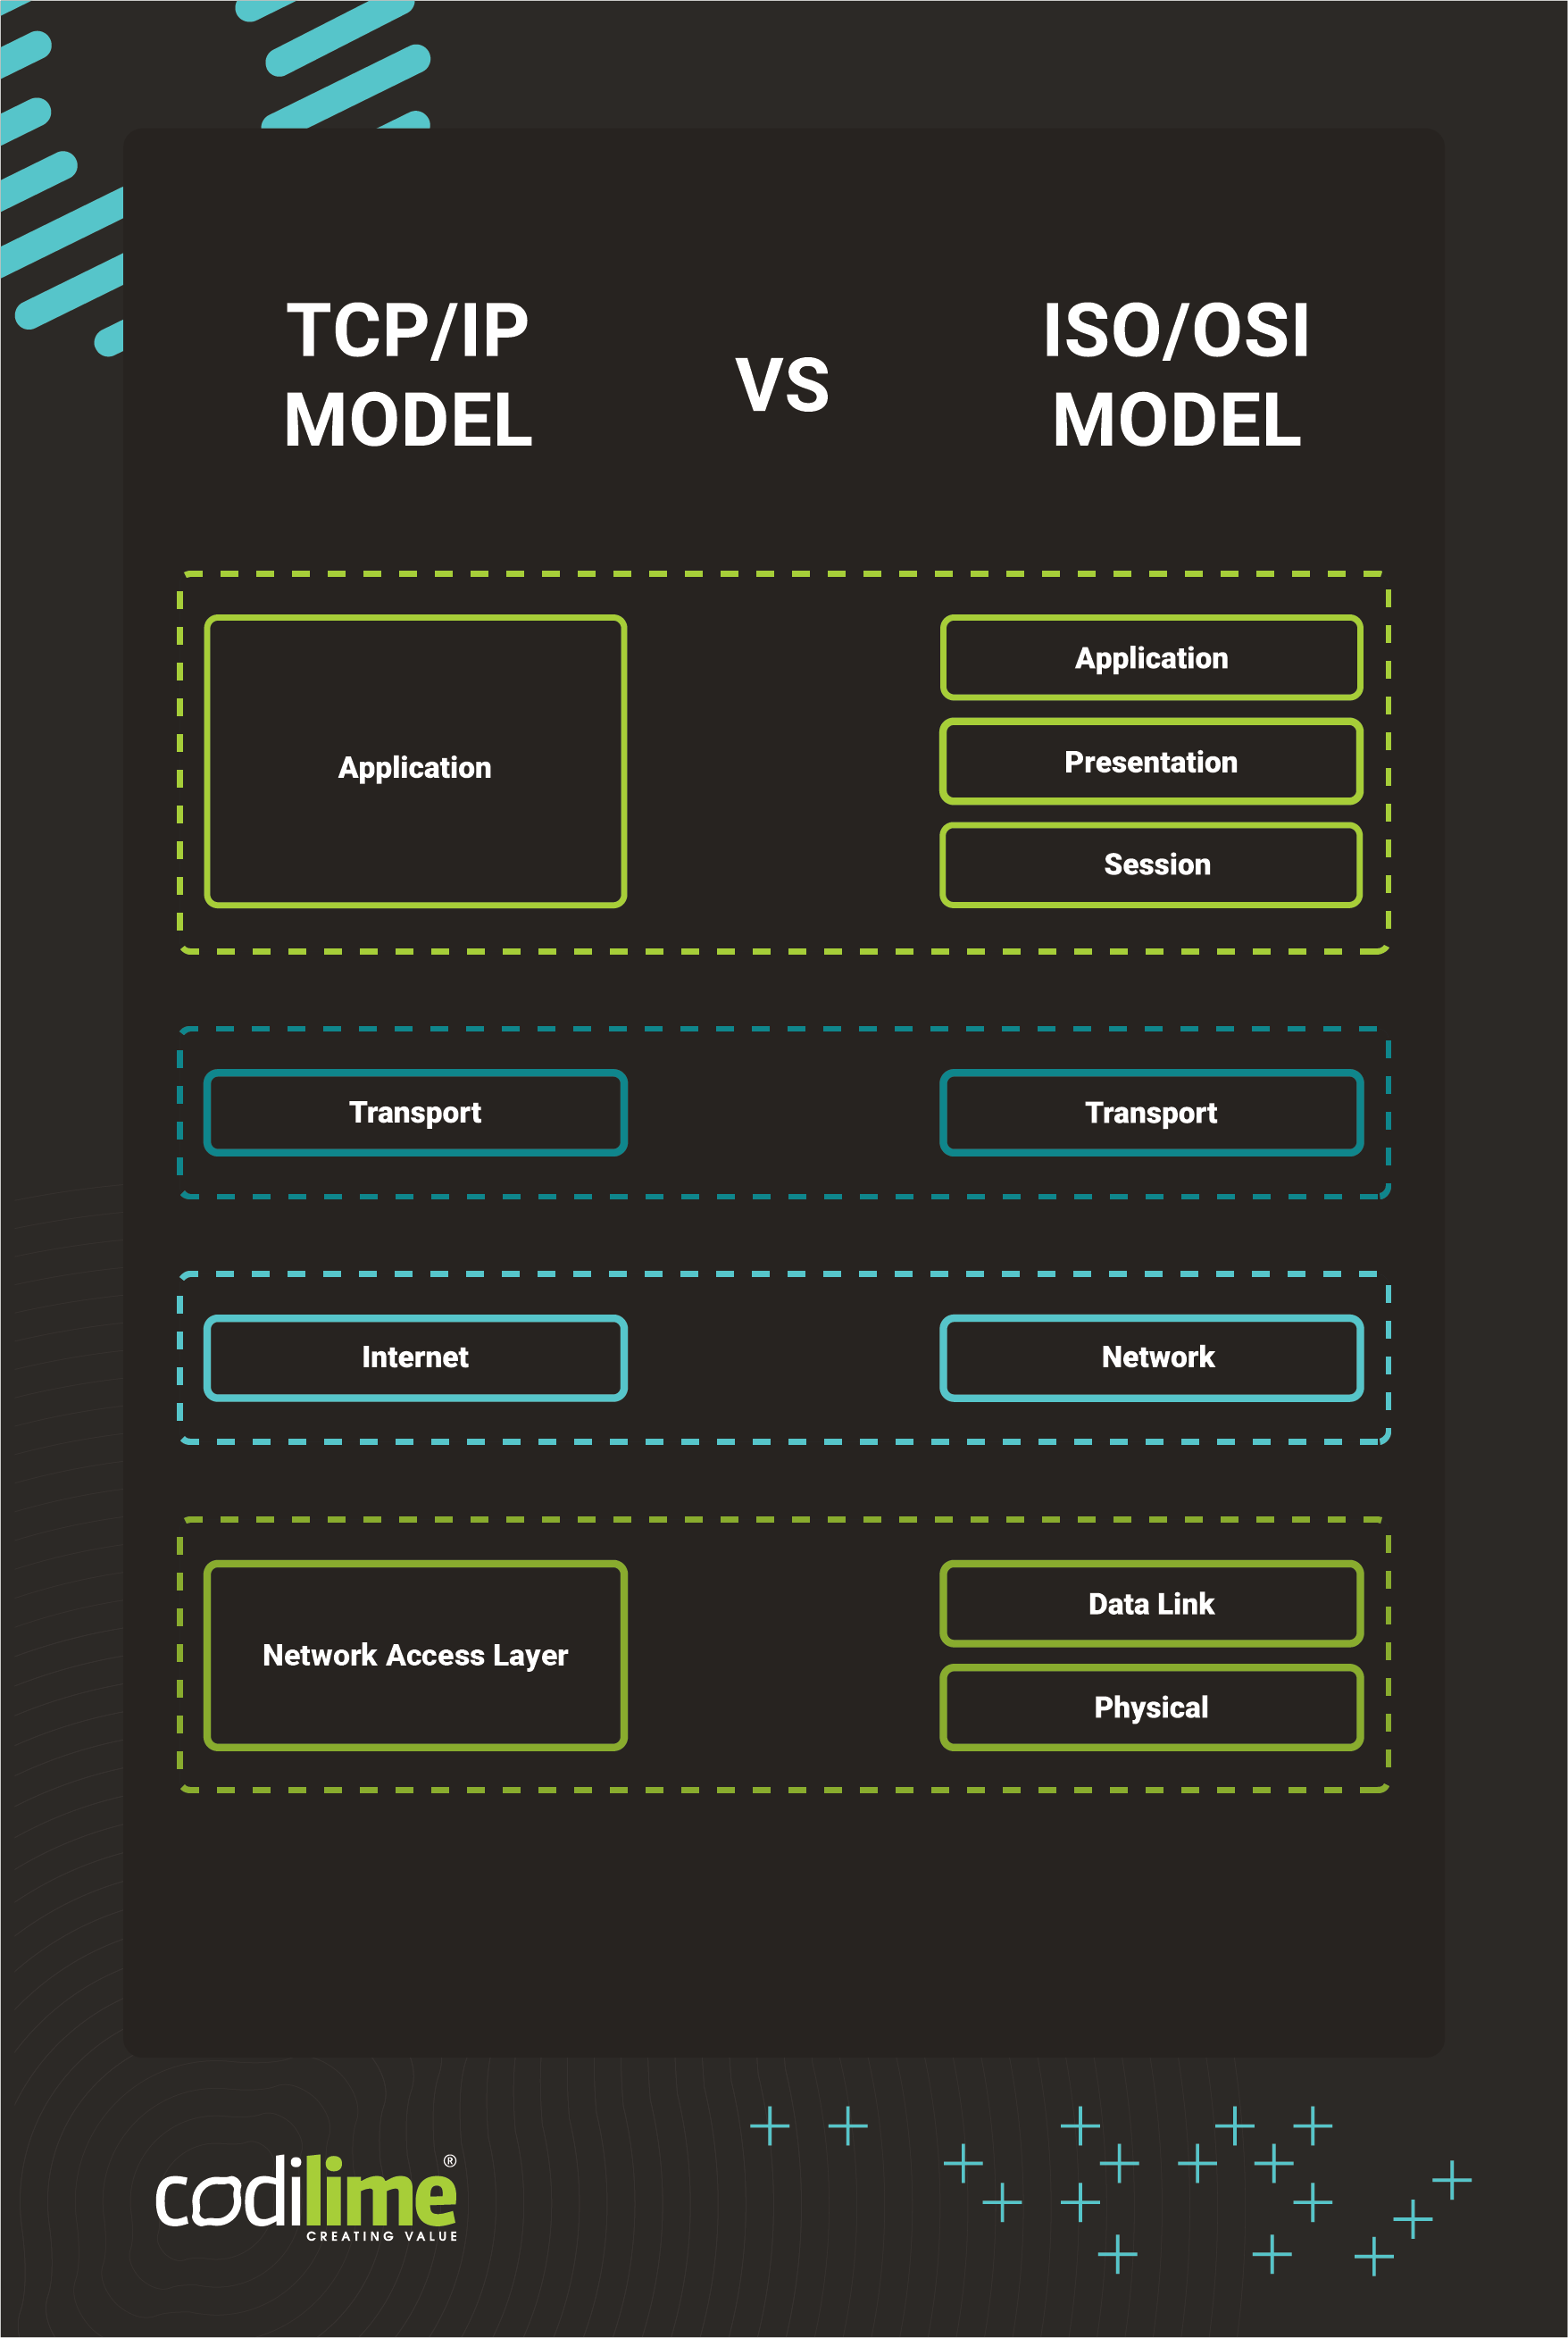 ISO/OSI and TCP/IP models